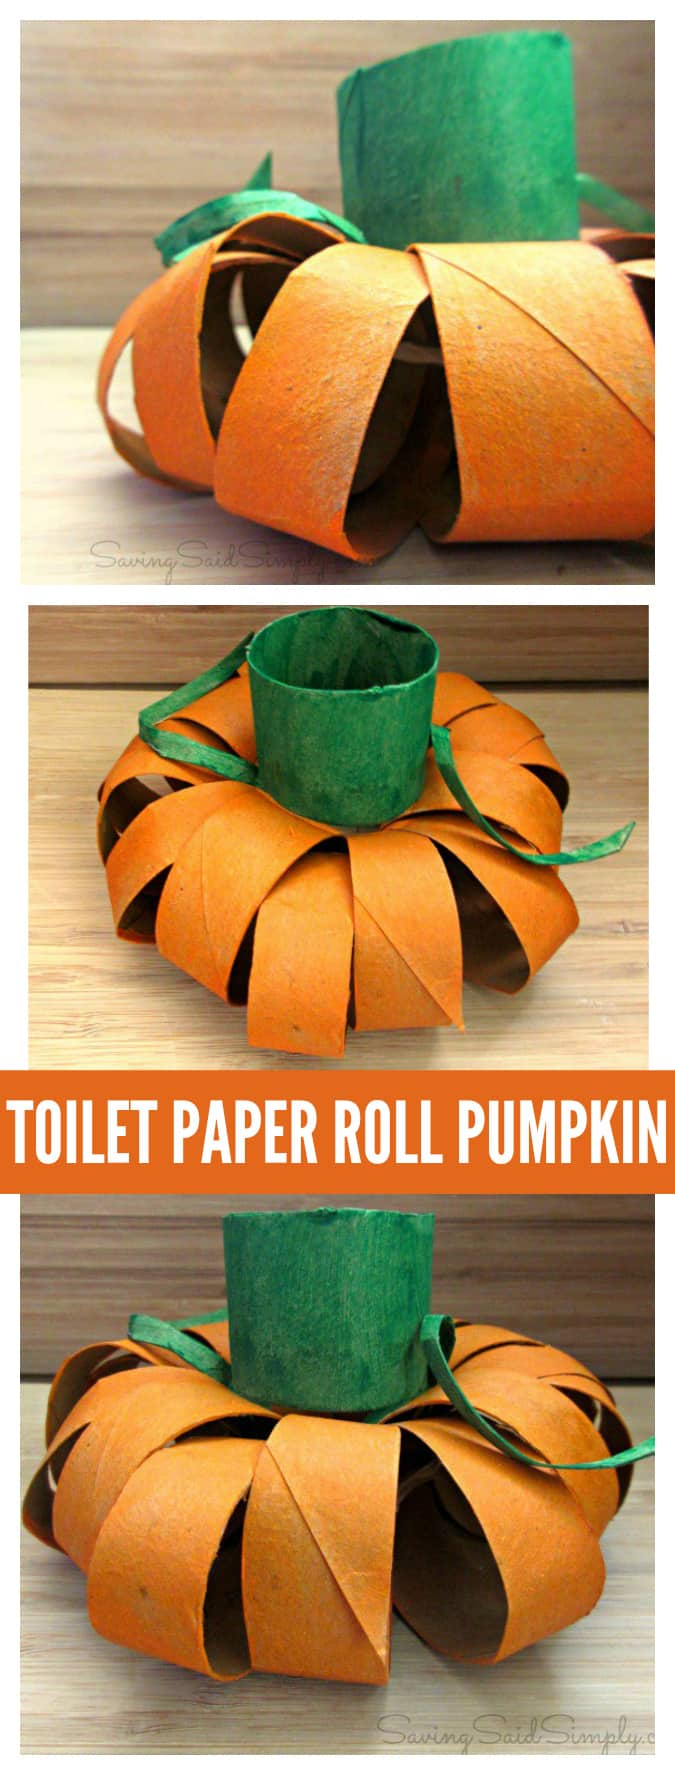 Toilet Paper Roll Pumpkin